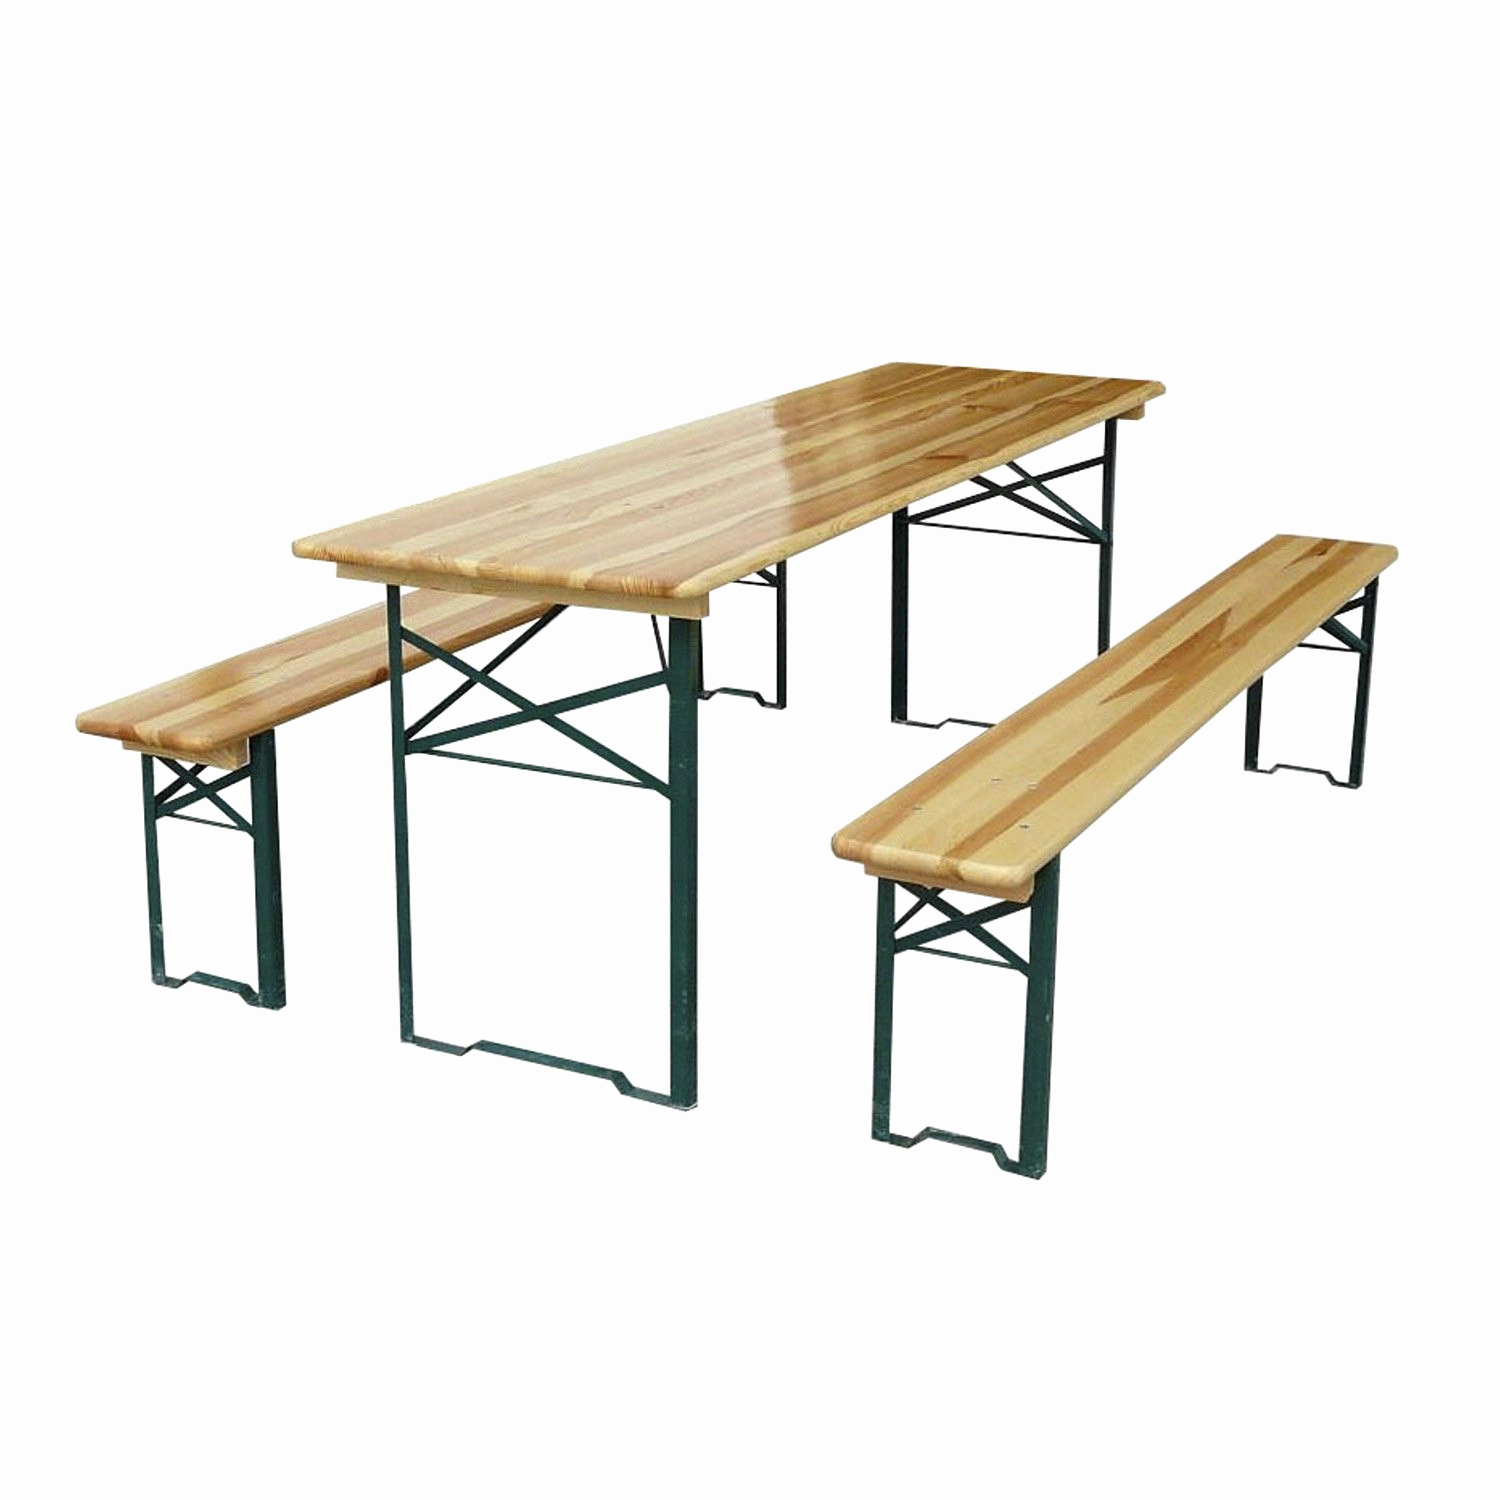 Table Rabattable Leroy Merlin Nouveau Collection Table Rabattable Leroy Merlin Nouveau Banc De Jardin Leroy Merlin